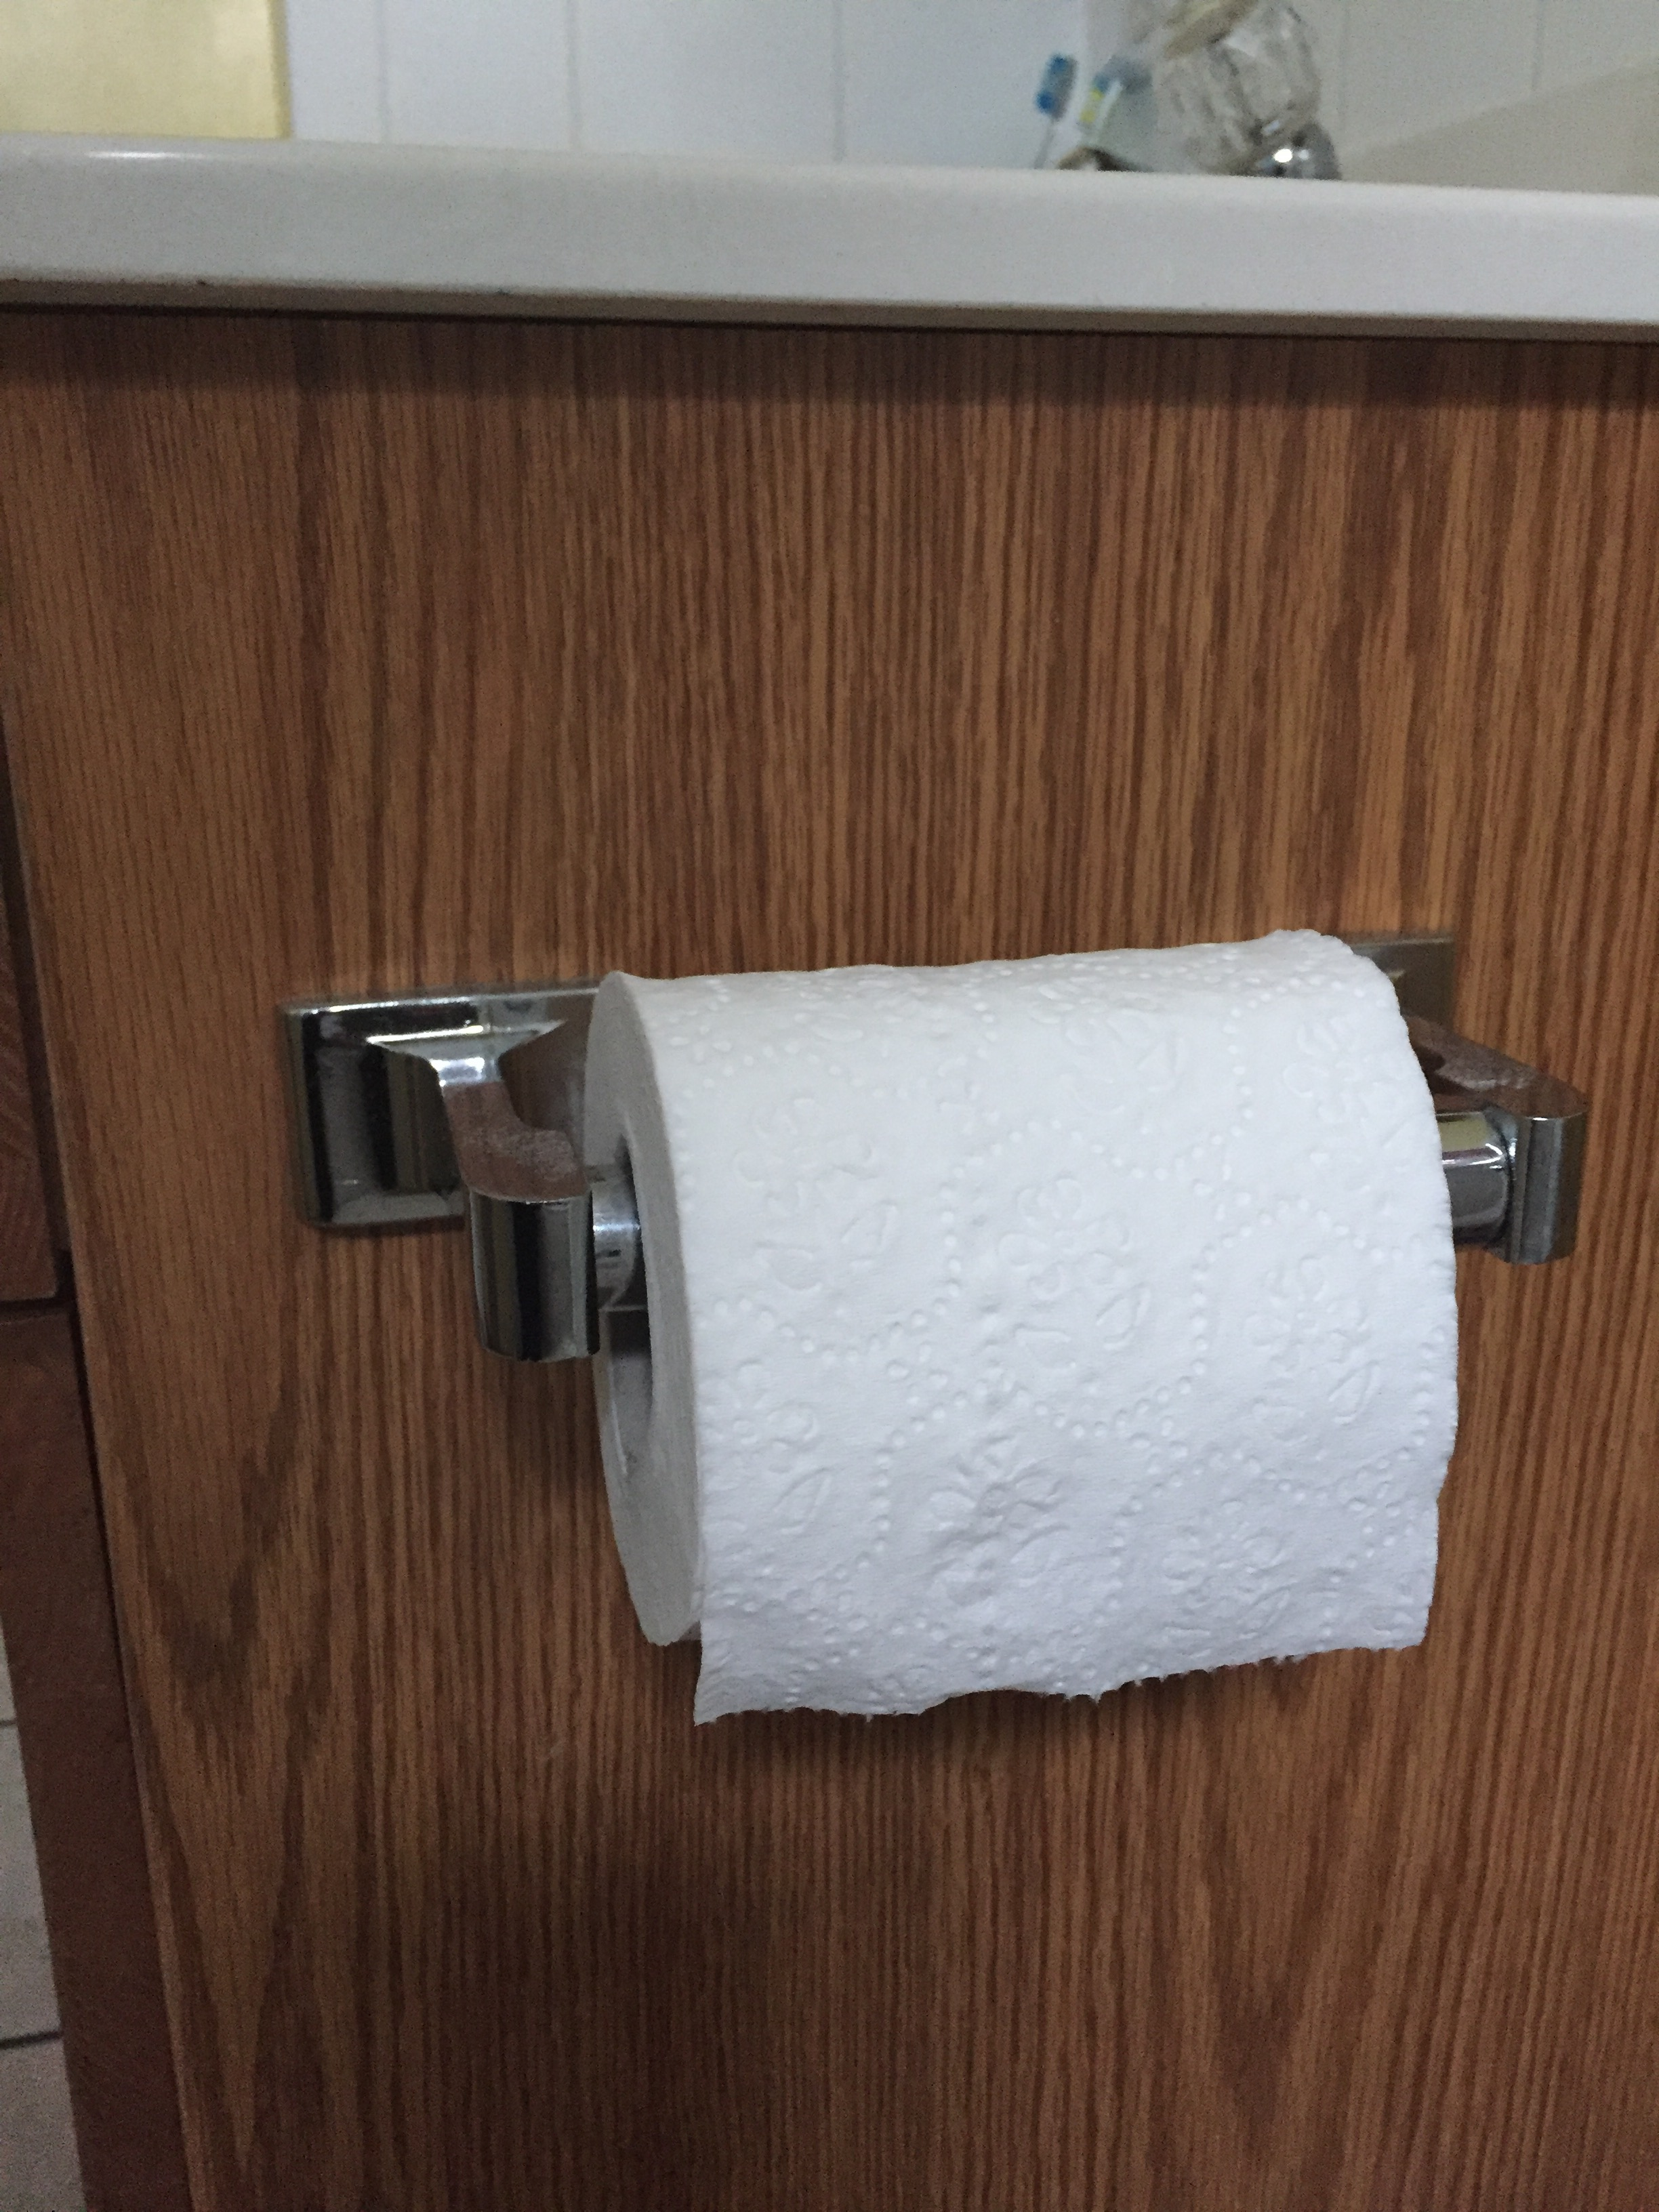 How to Change the Toilet Paper Roll